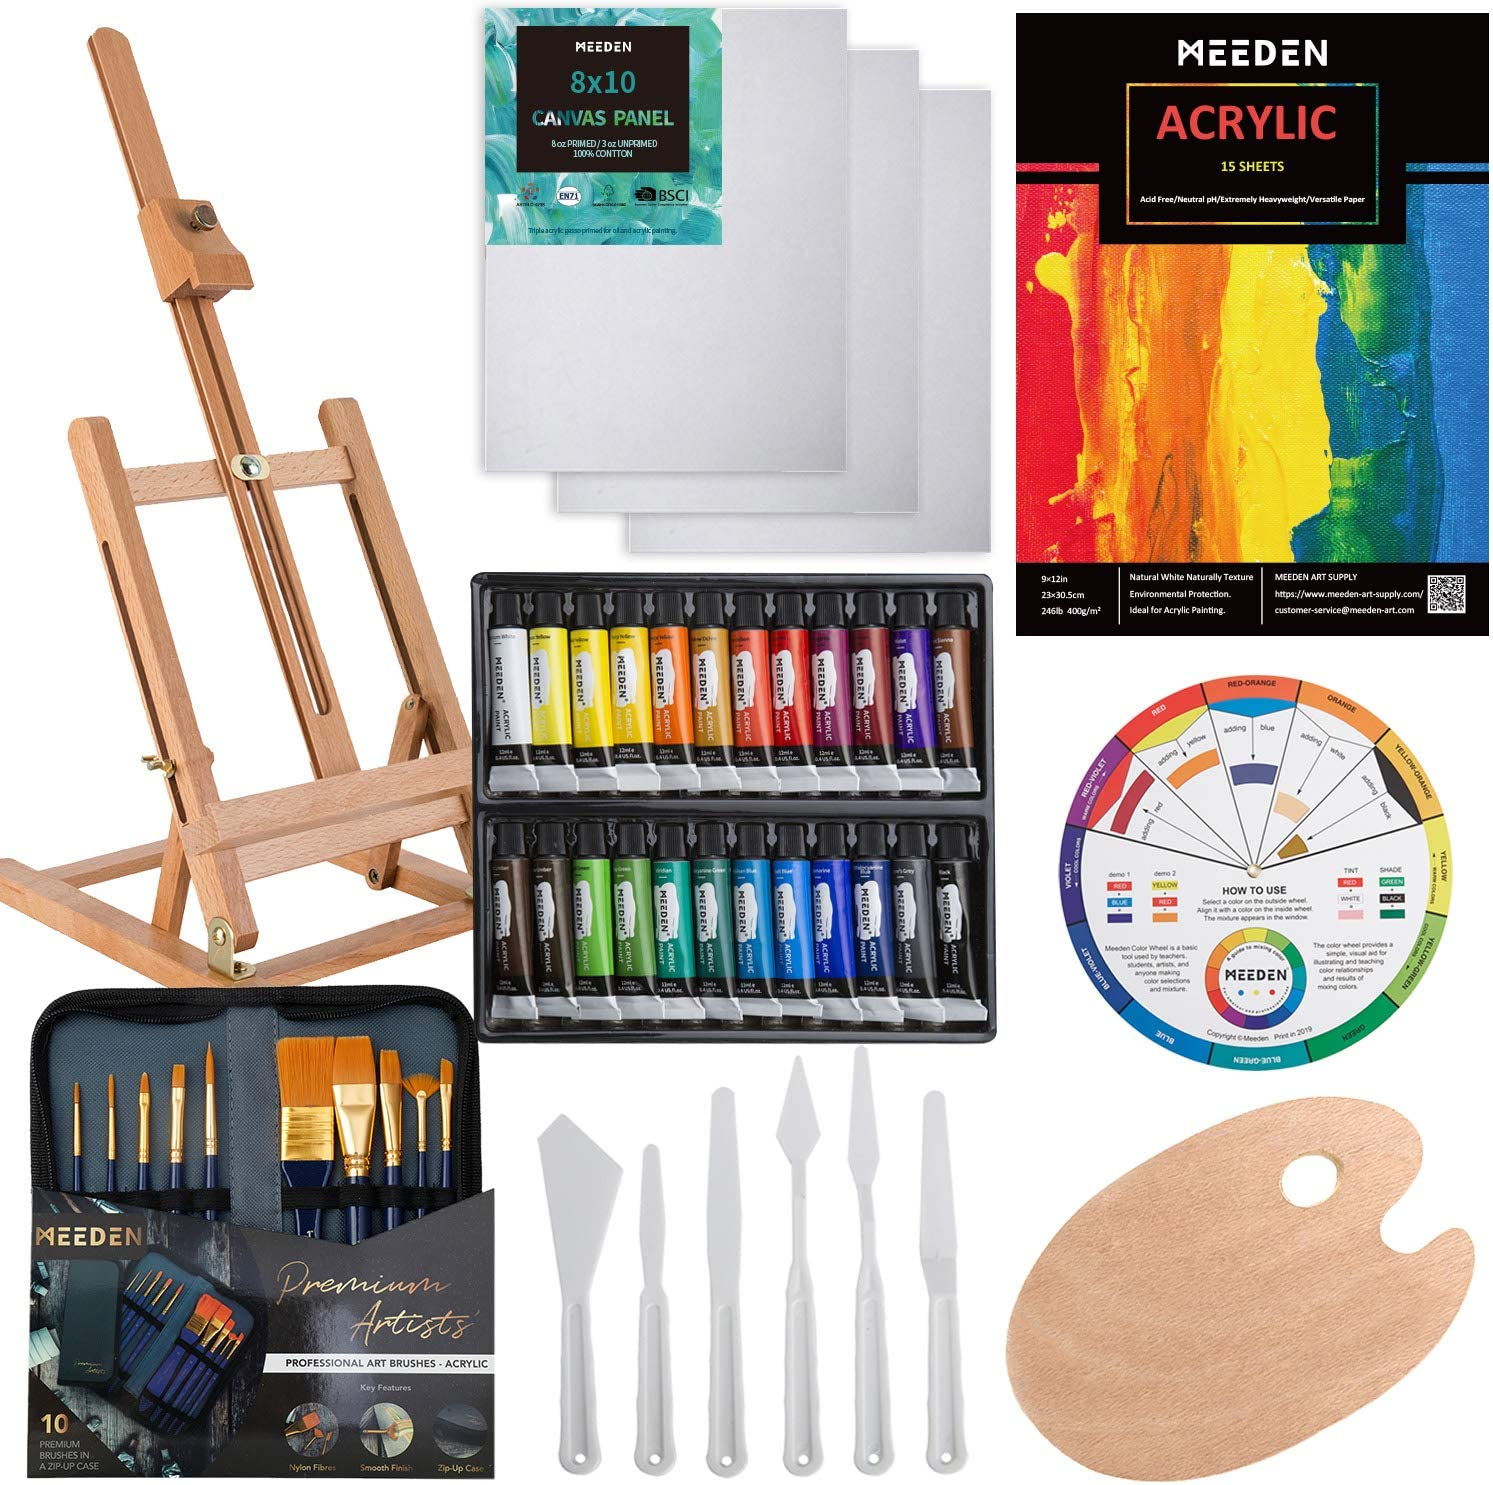 MEEDEN 47-Piece Acrylic Painting Set - Solid Beech Wood Table Easel, 24×12ML Acrylic Paint Set, Canvas Panels, Acrylic Paintbrush Set, Acrylic Pad, Wood Paint Palette, Gift for Kids & Beginner Artist